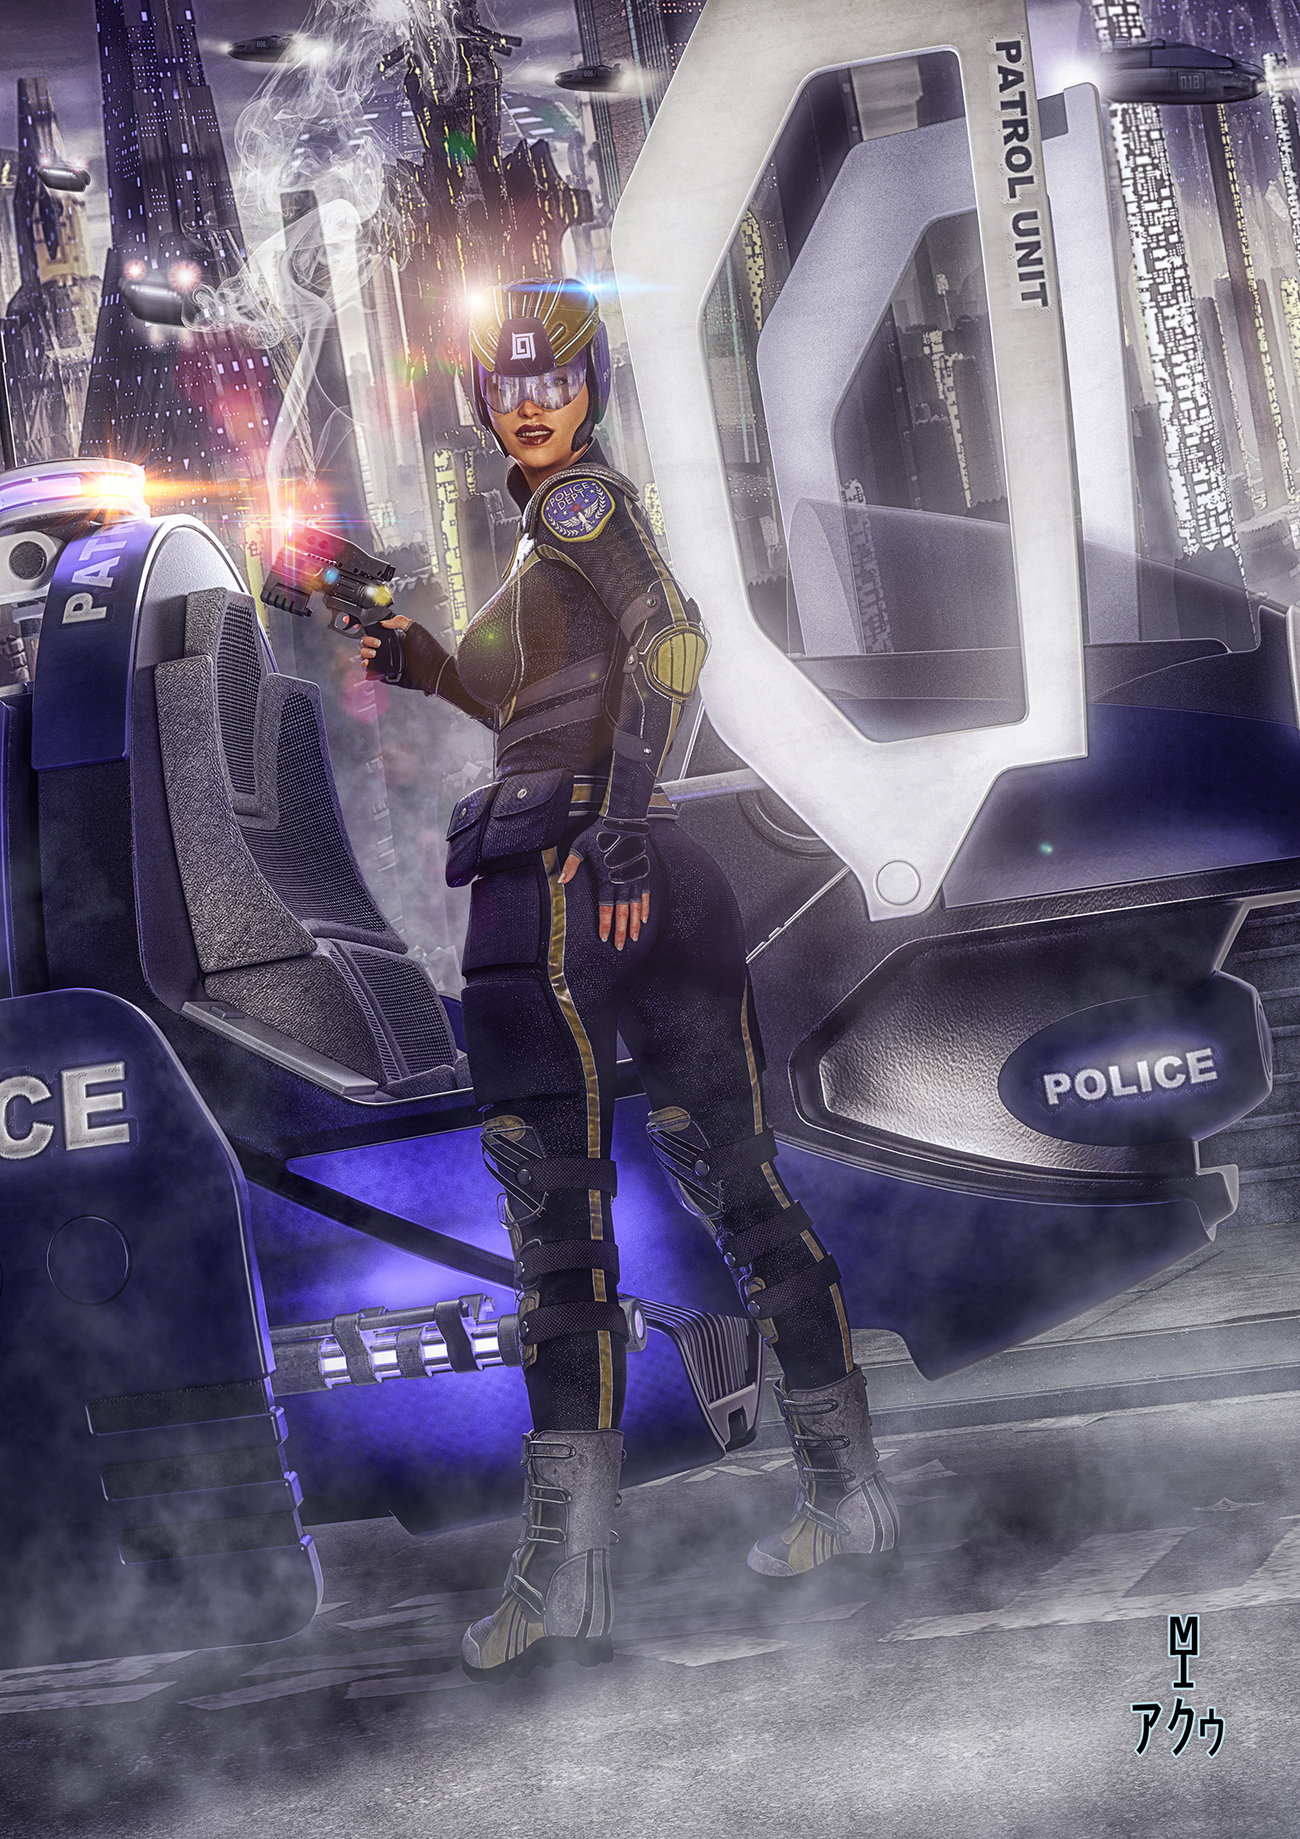 Police Patroller in the Big Bad City